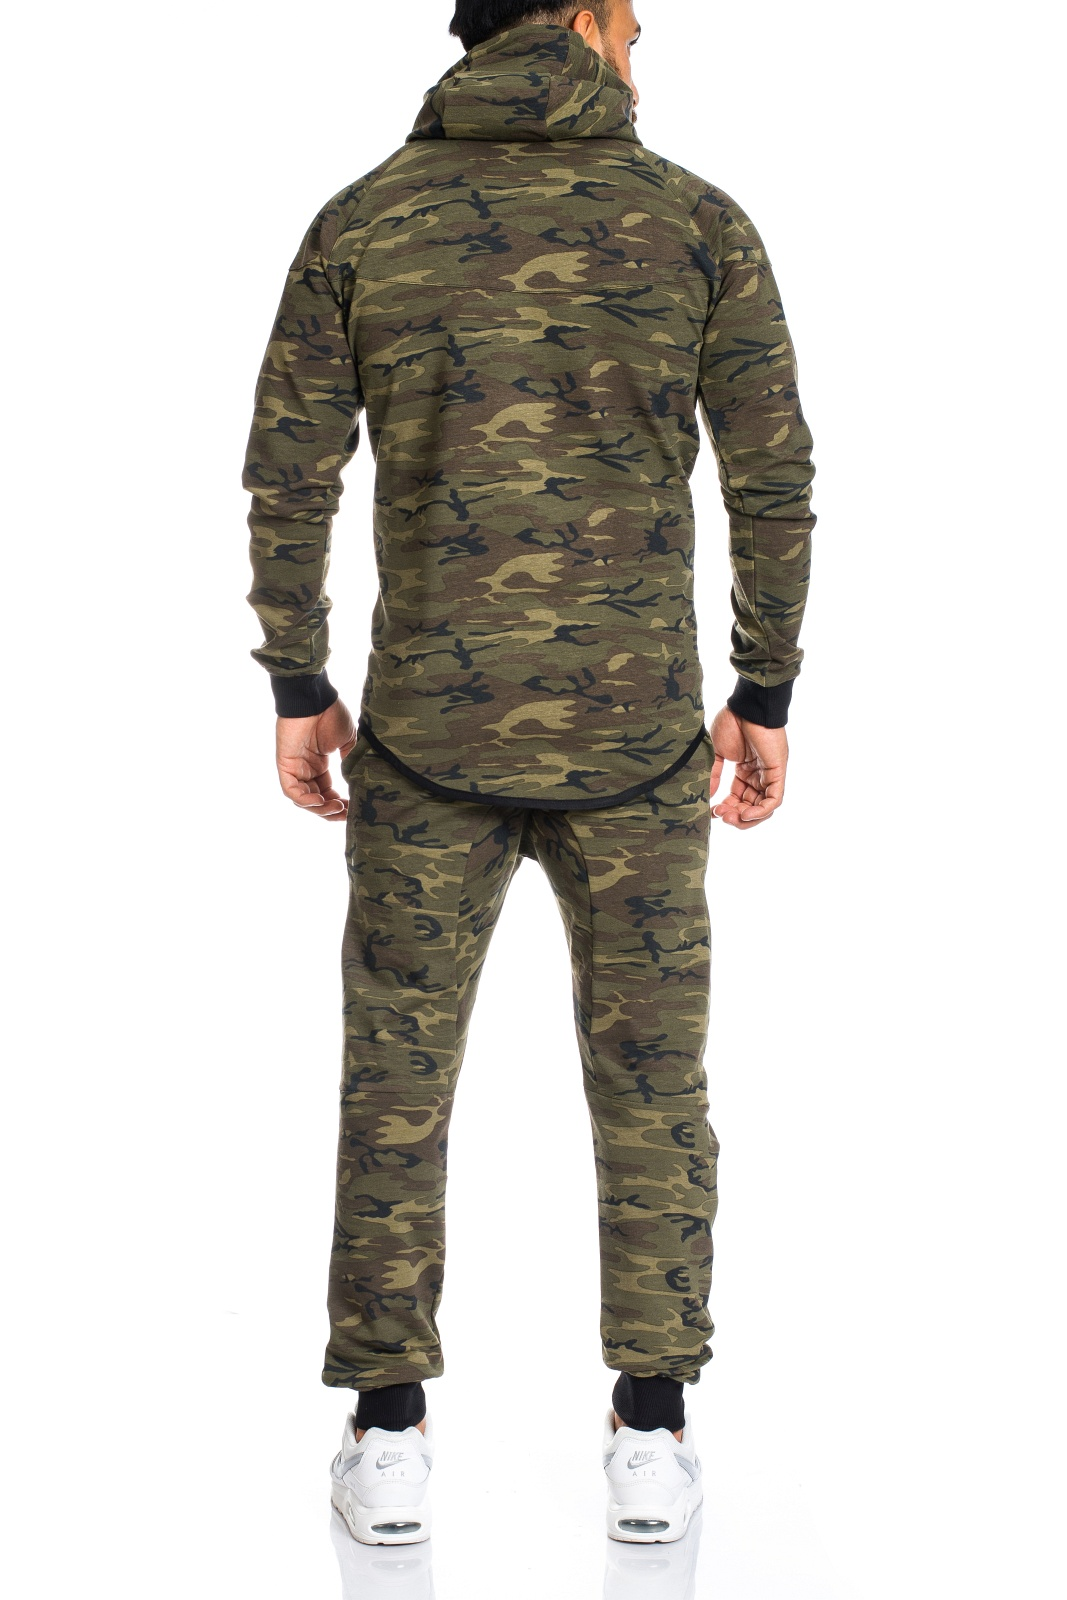 men 39 s camouflage army jogging suit jogging pants jacket trackies trousers ll202c. Black Bedroom Furniture Sets. Home Design Ideas